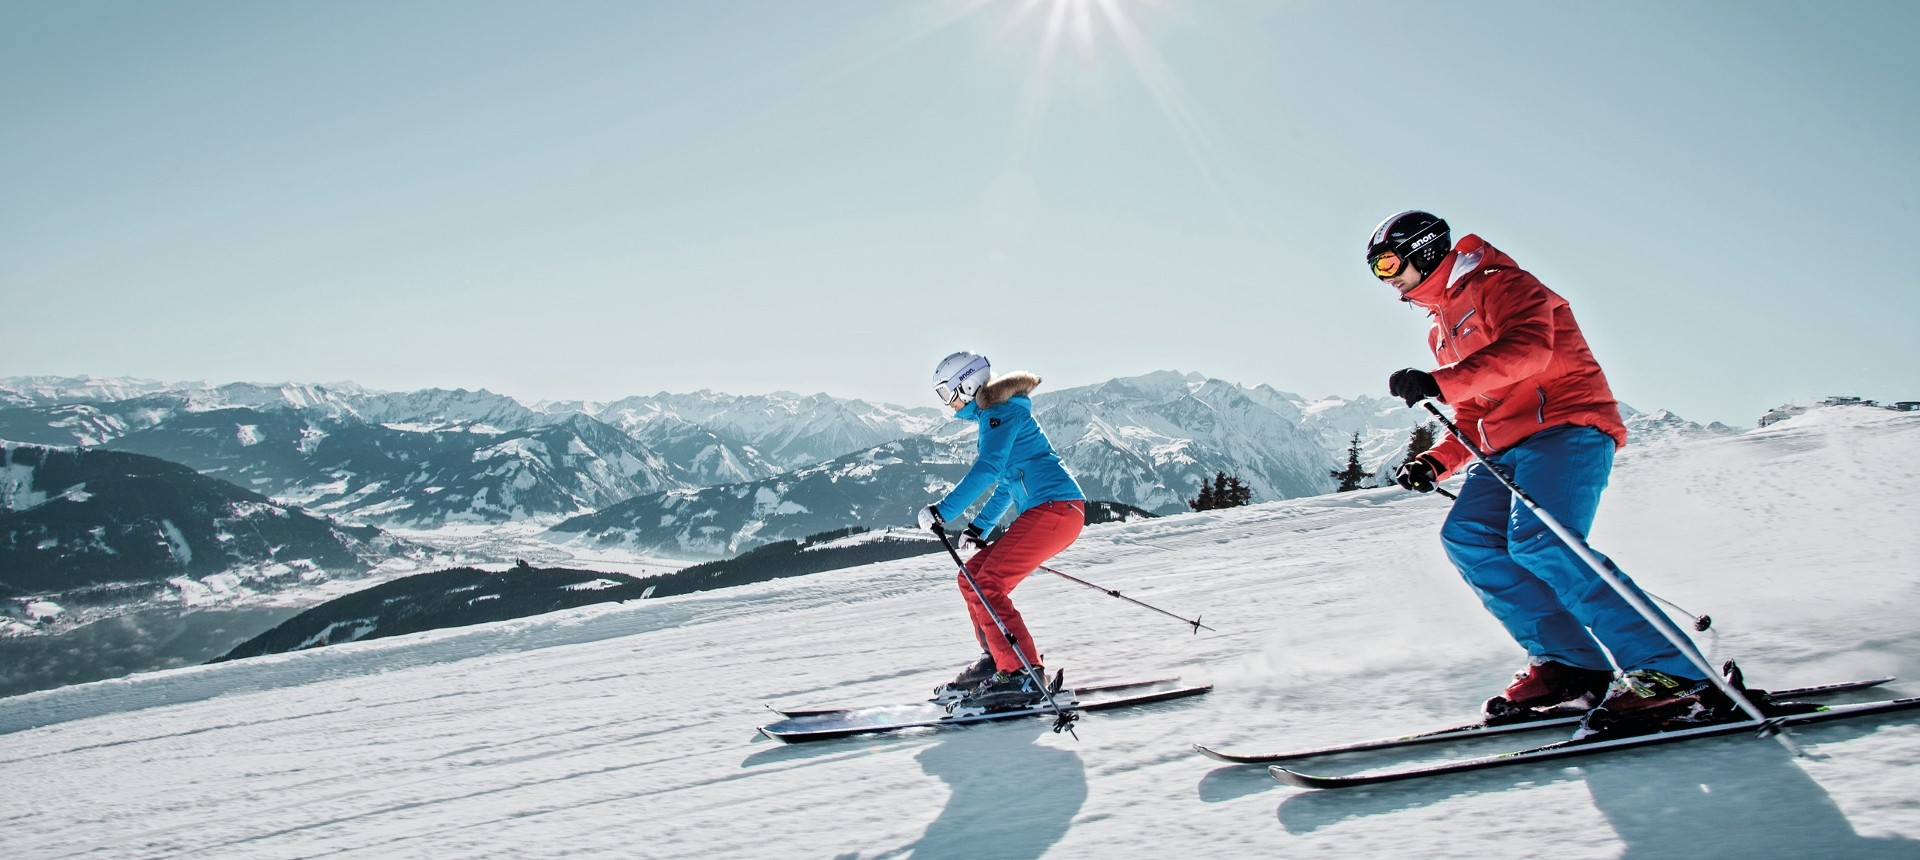 Always safe skiing with your ski instructor